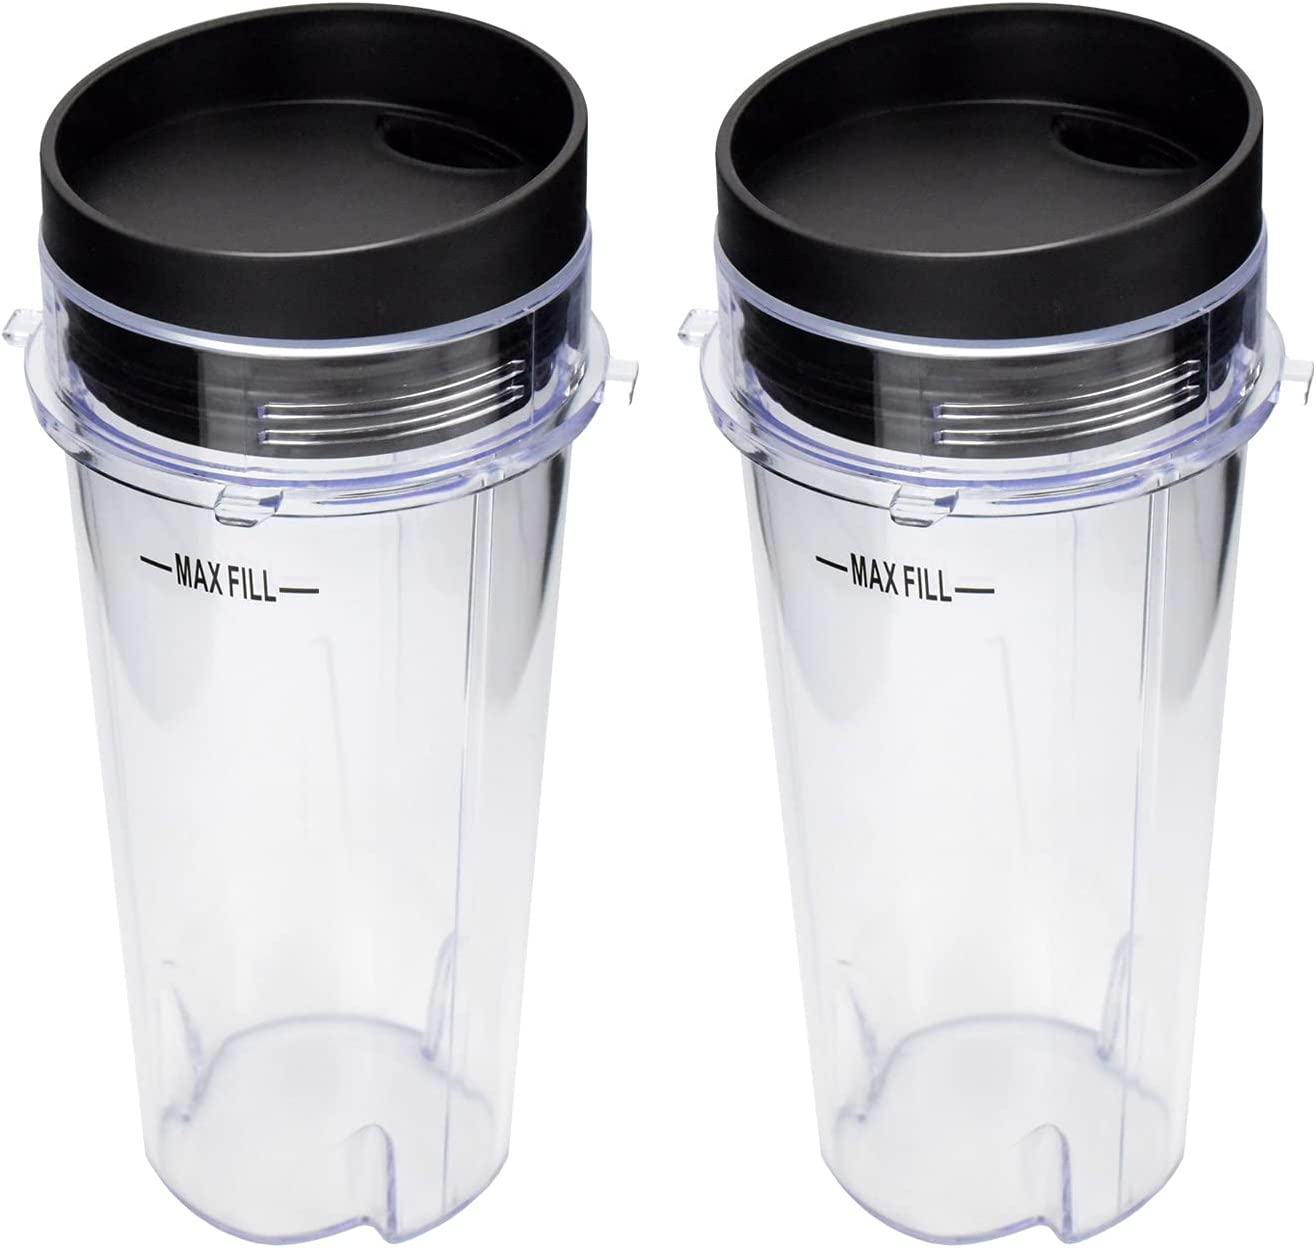 Blender Cup with Lid For Nutri Ninja, Single Serve Replacement Parts Compatible with BL740/BL770/BL771/BL772/BL780/BL660/BL663/BL810/BL820/BL830, Food grade Material, Dishwasher Safe (2Pack, 16 oz)